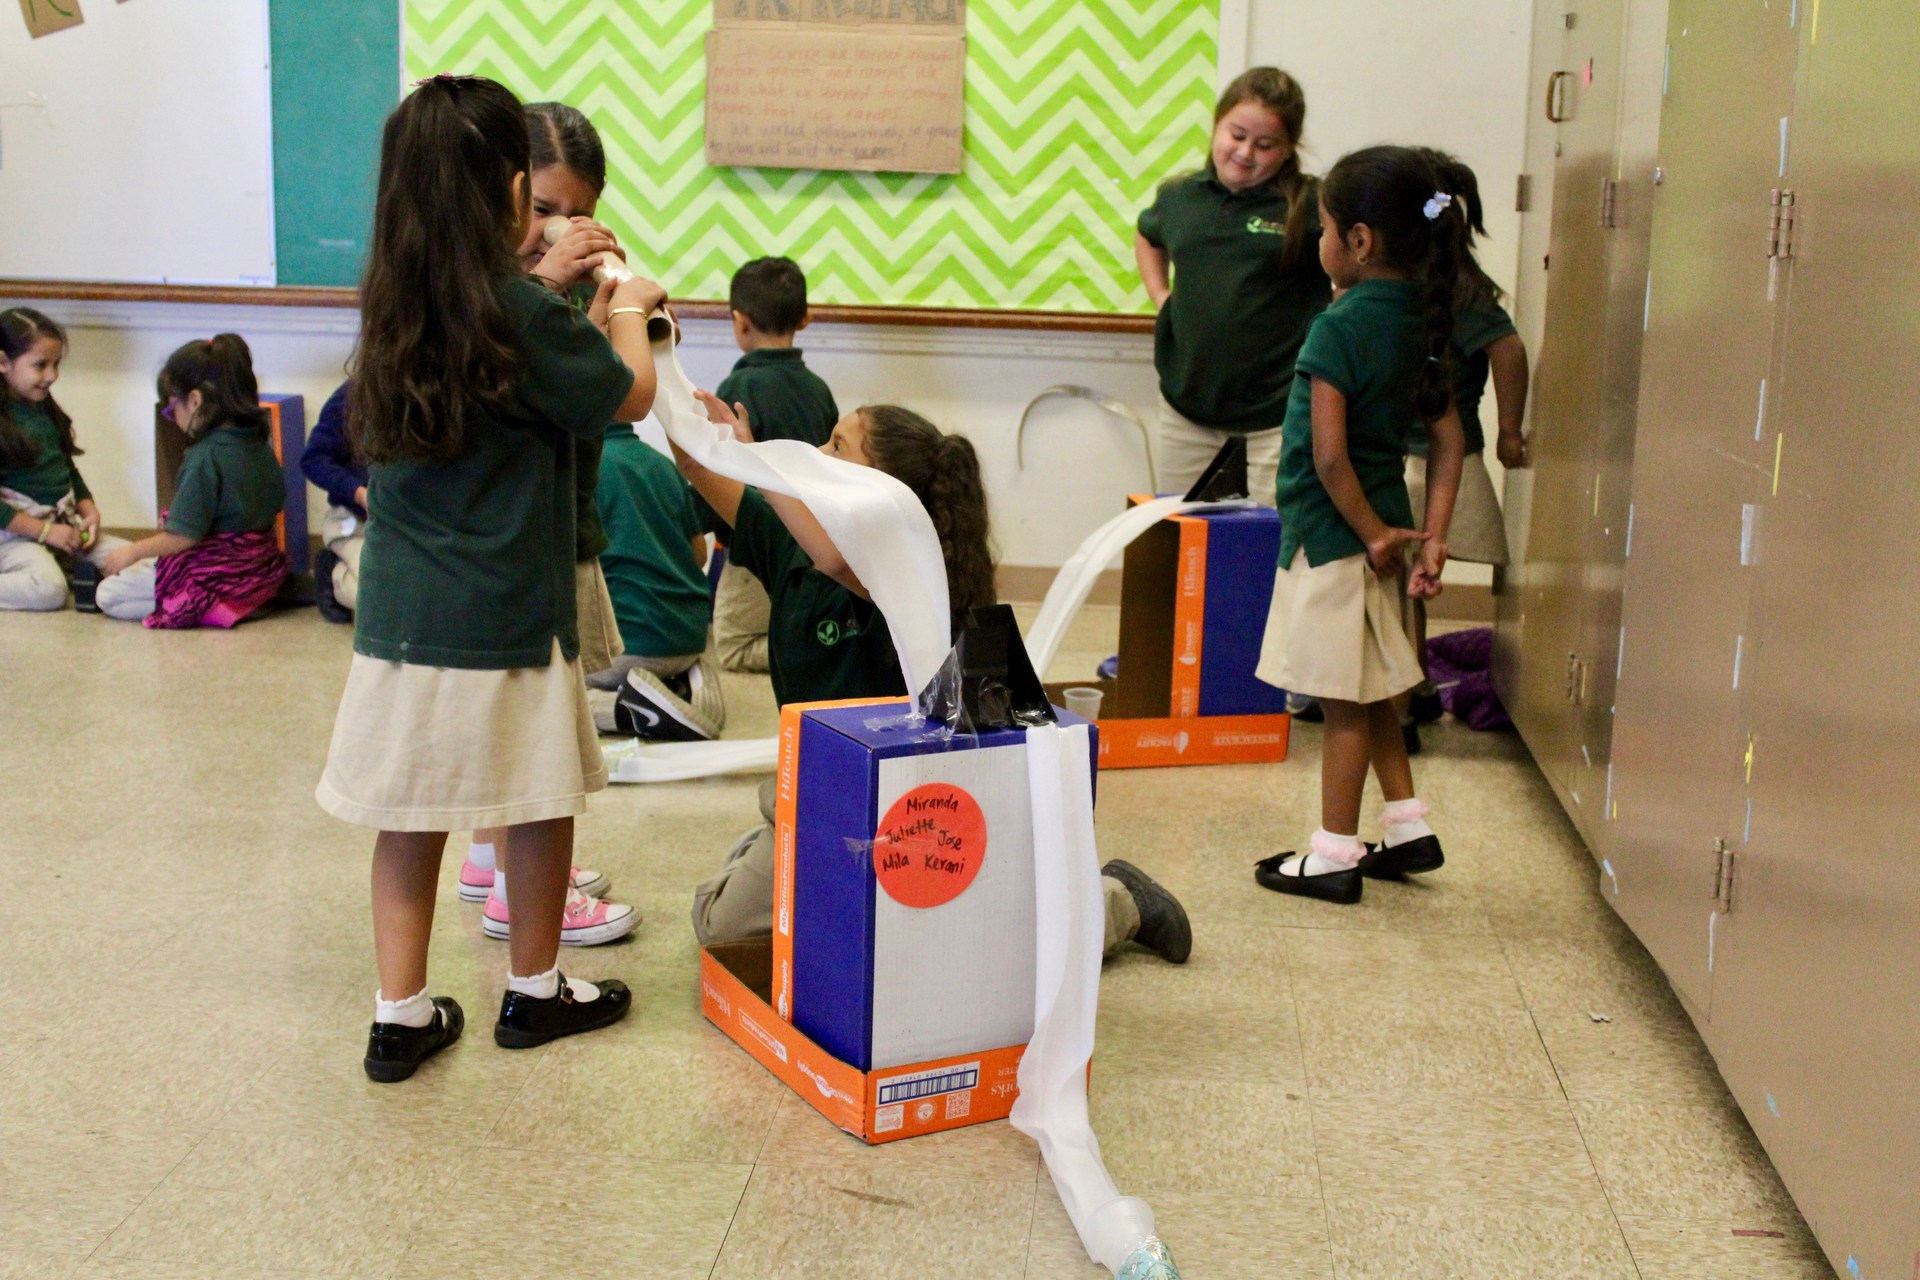 students create games with recycled materials